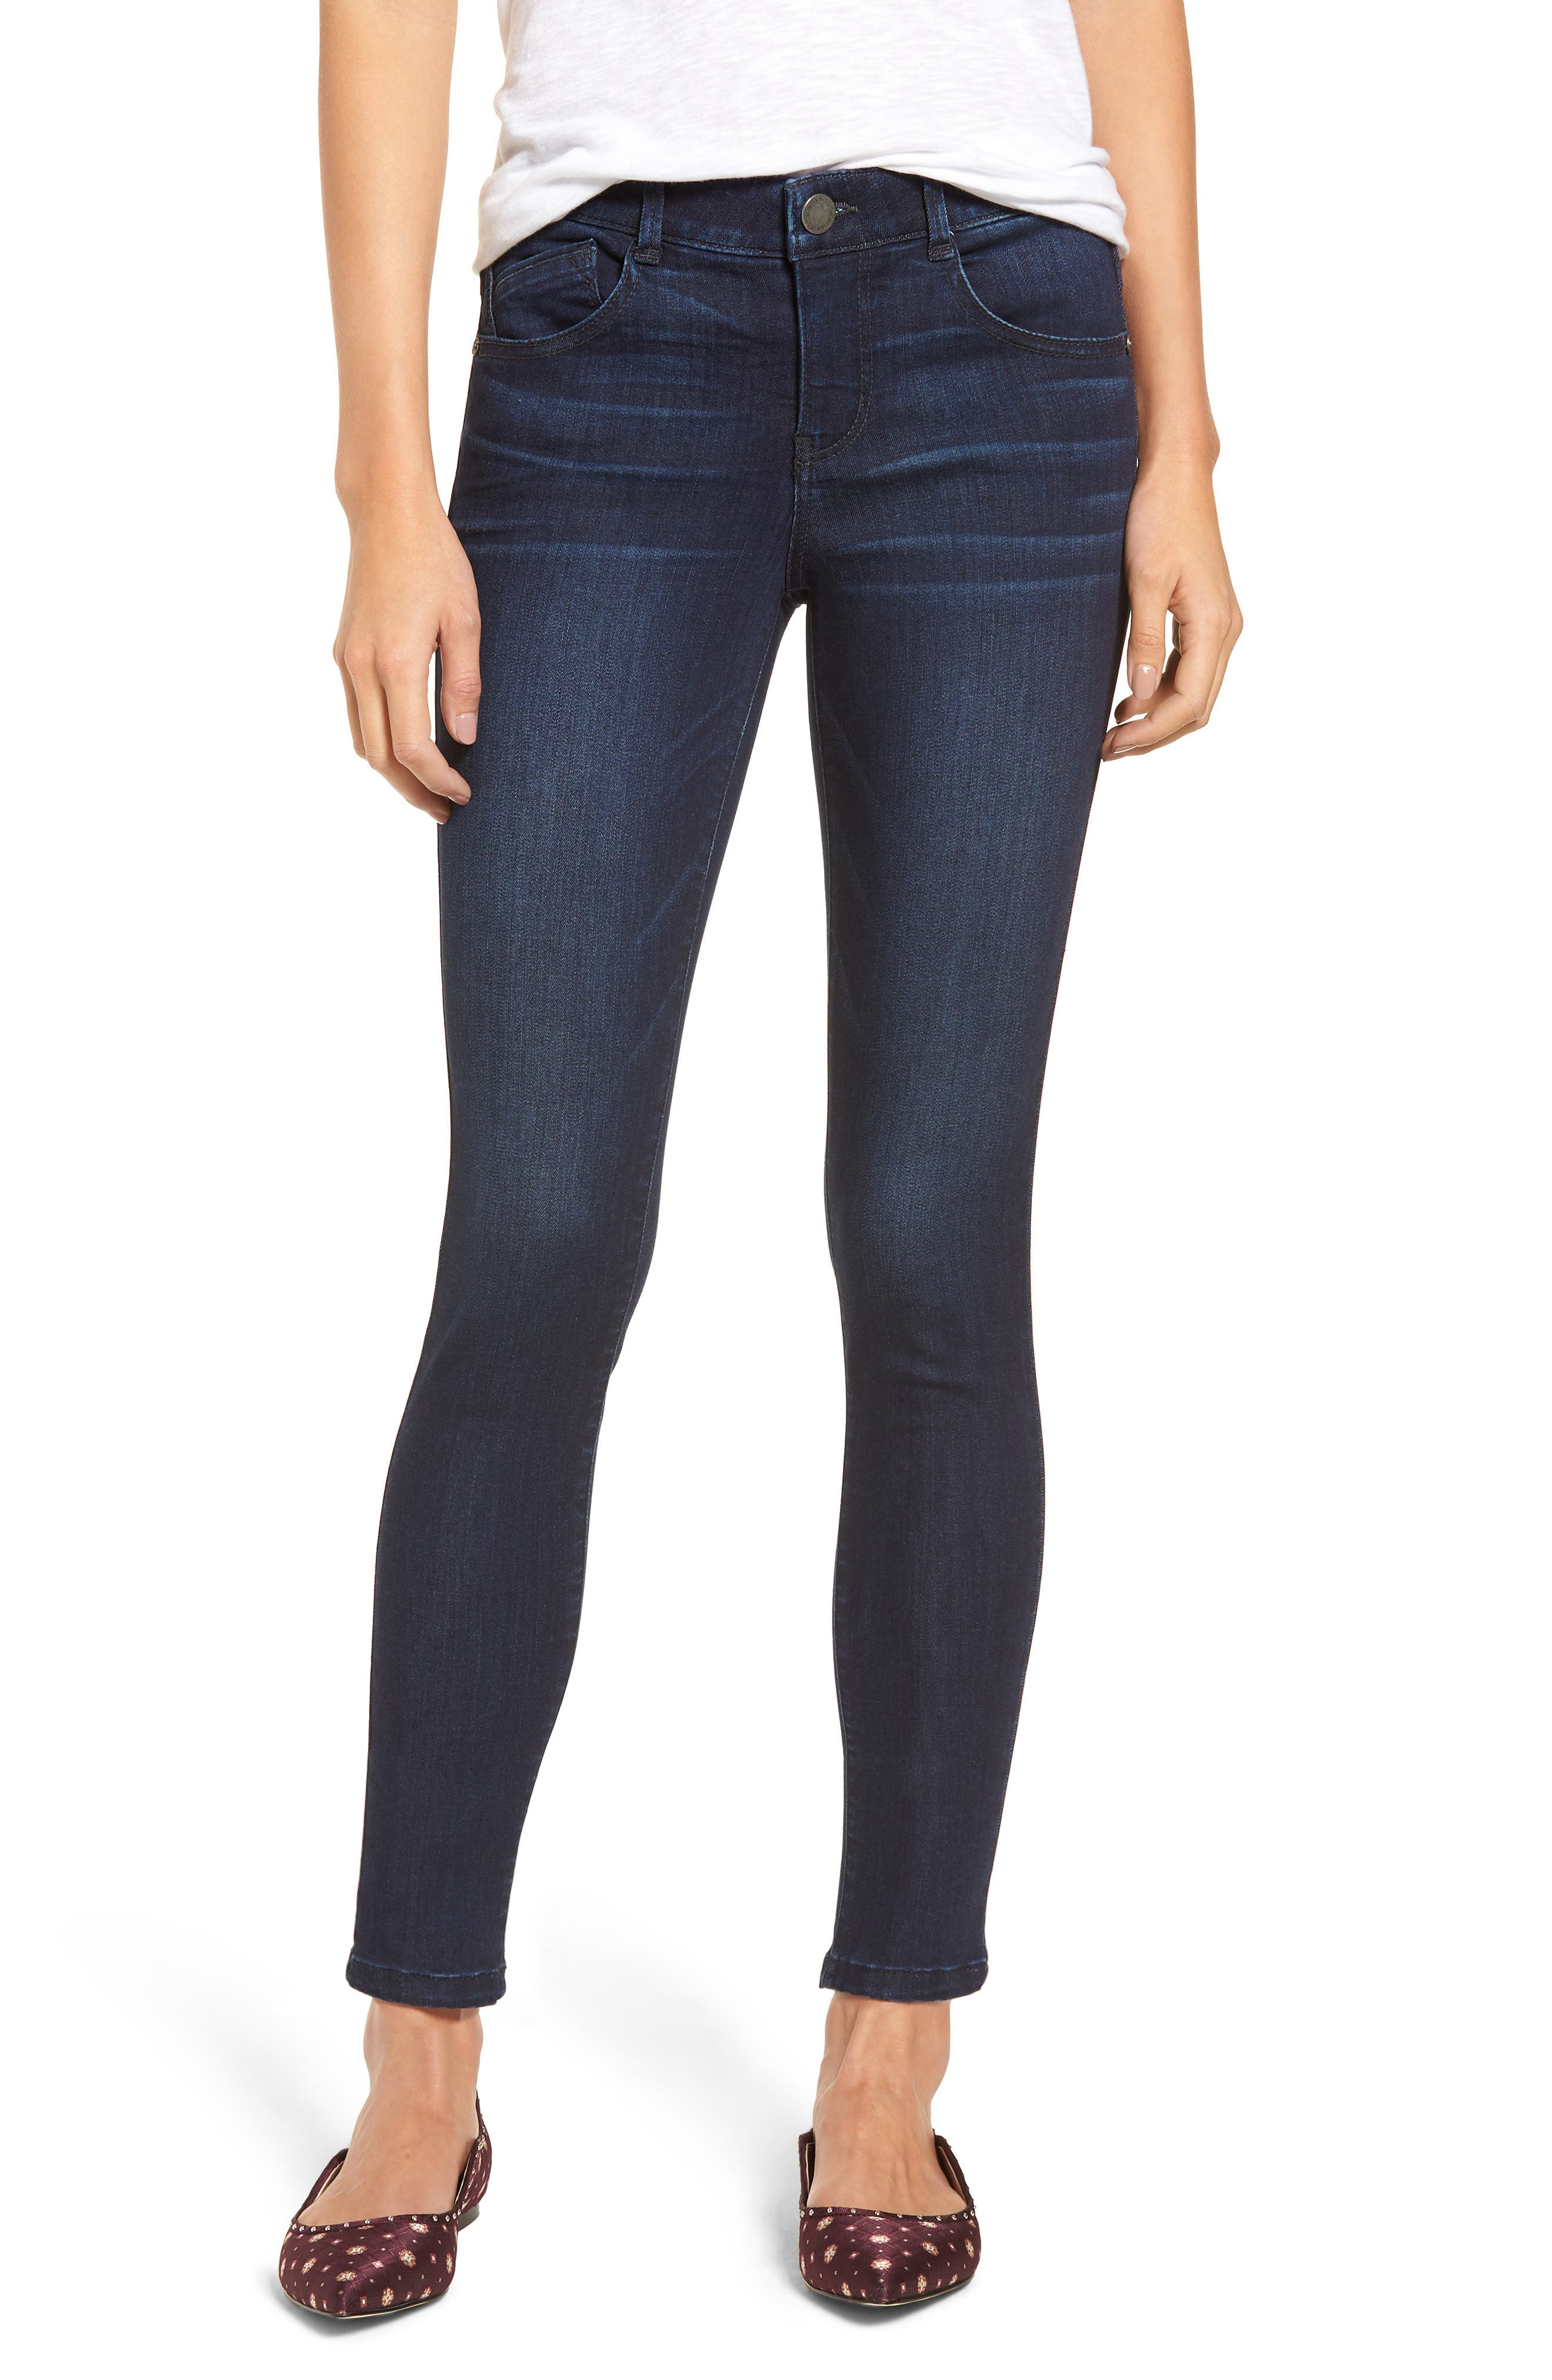 Ab-solution Skinny Jeans,                             Main thumbnail 1, color,                             402